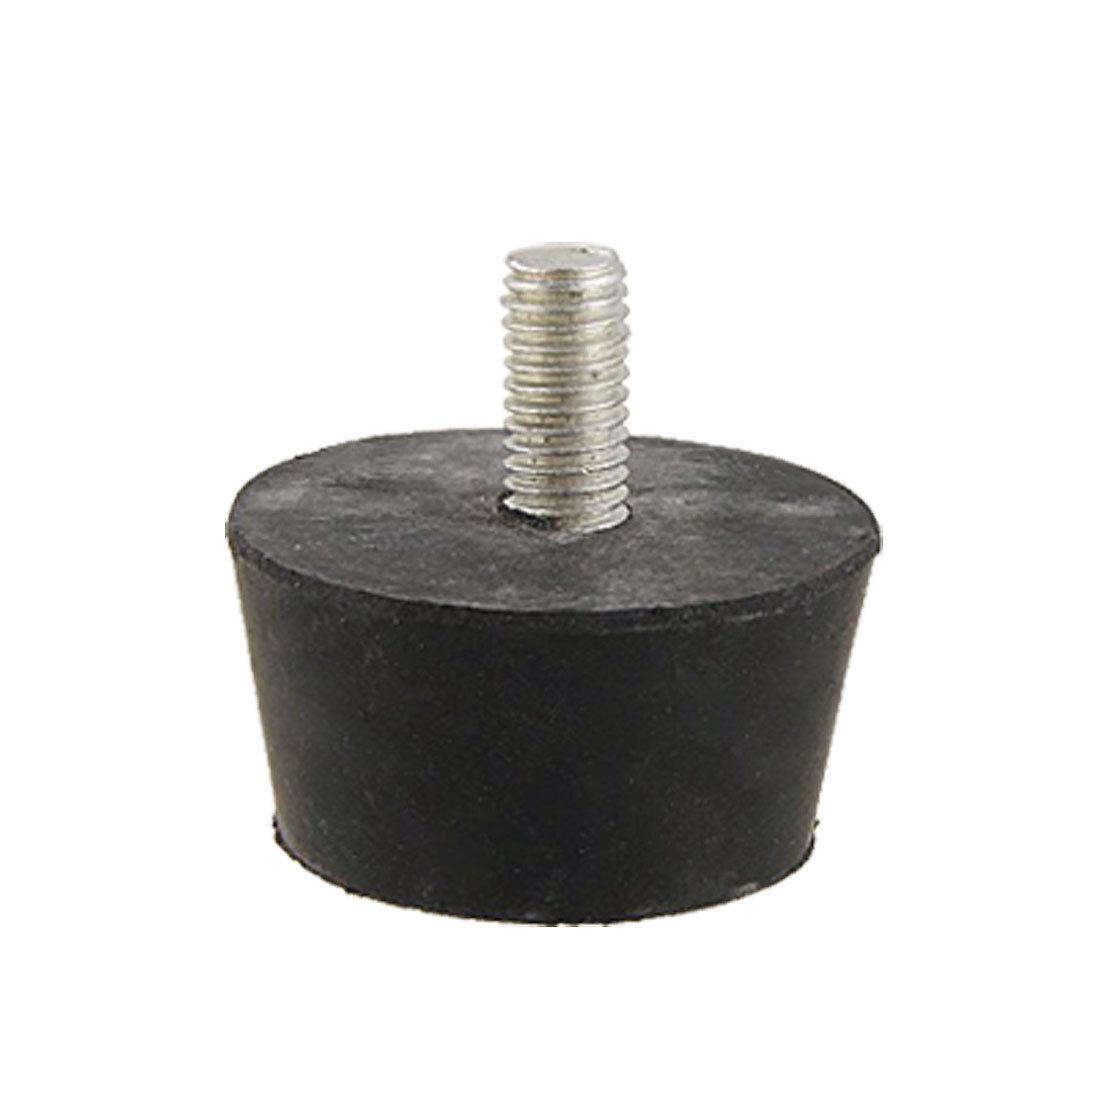 Metal Threaded 8mm Diameter Black Rubber Based Foot